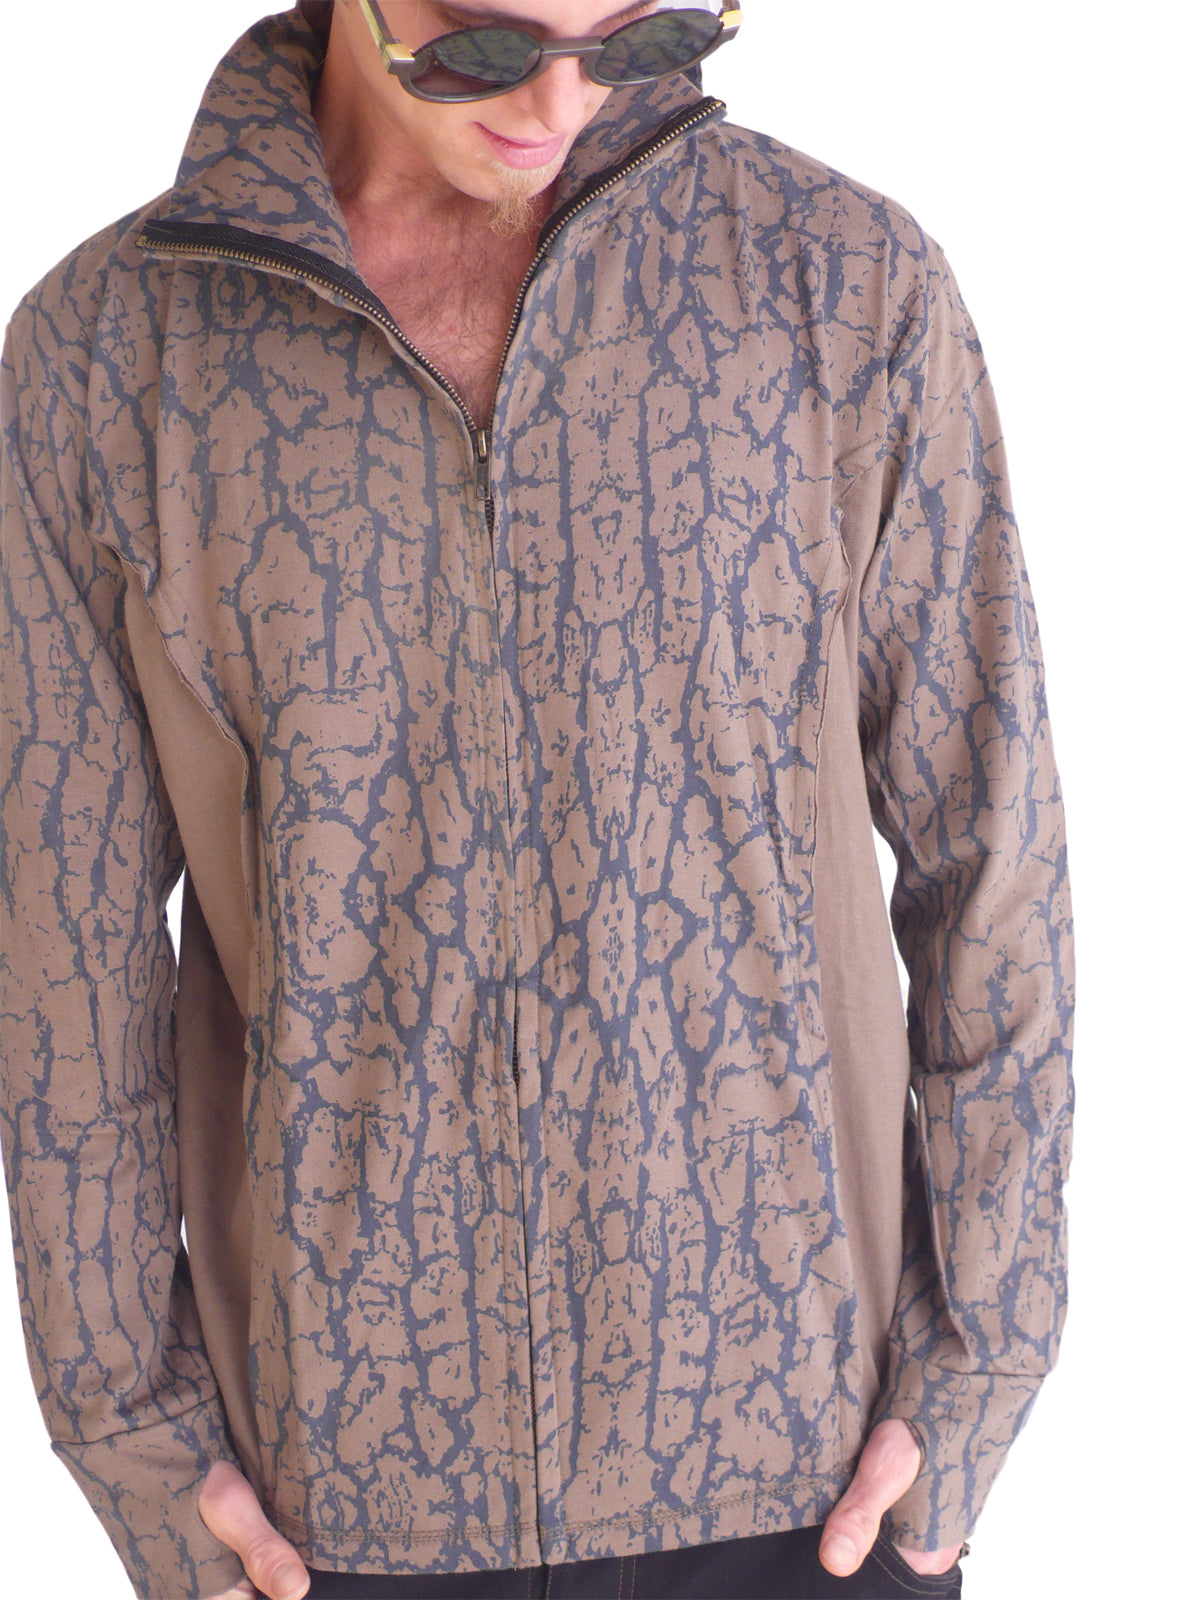 Mens Cotton Hoodie Tree Skin - Brown